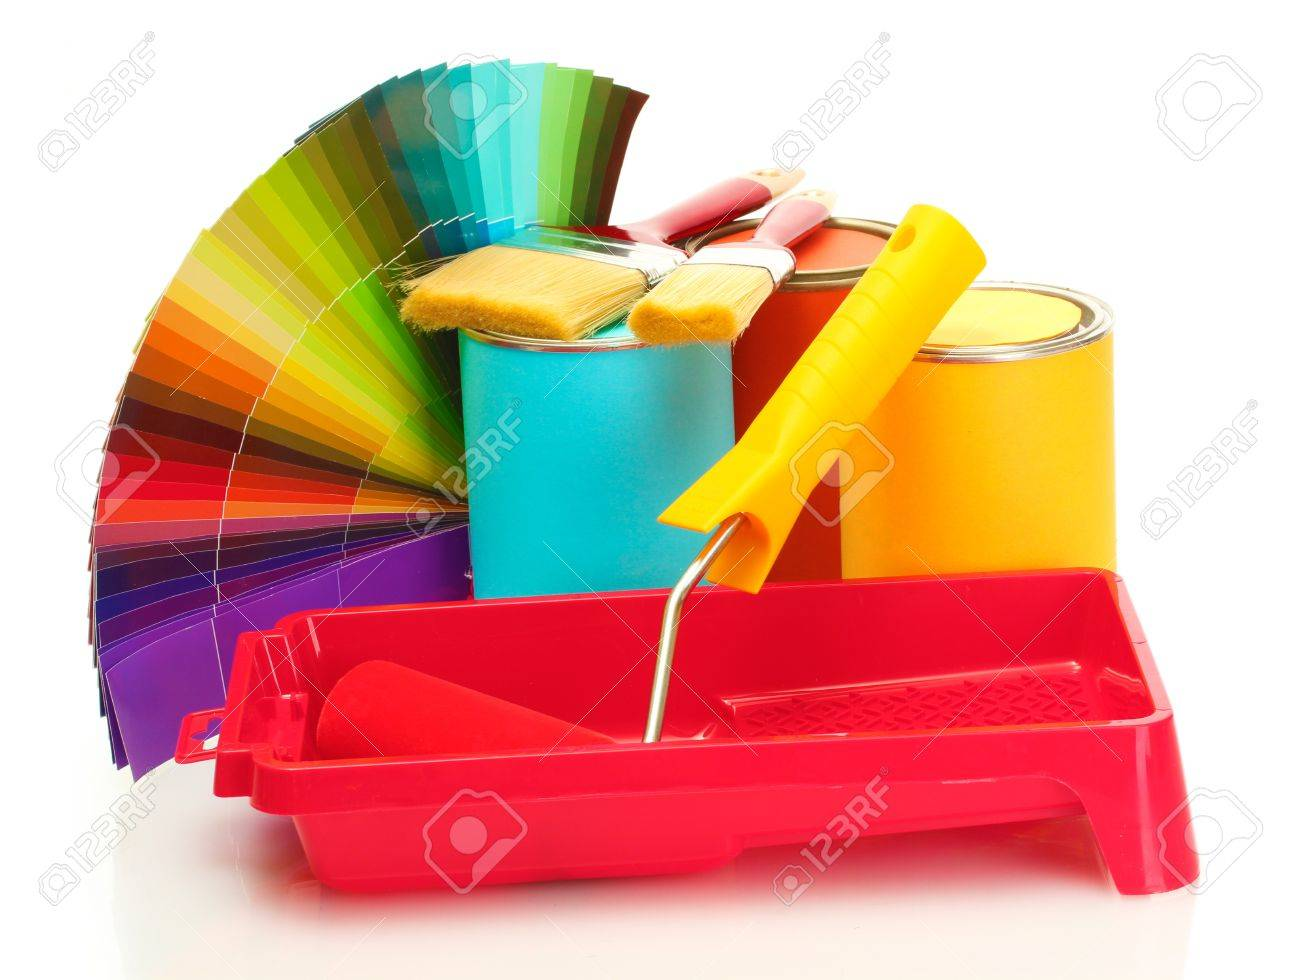 tin cans with paint roller brushes and bright palette of colors tin cans with paint roller brushes and bright palette of colors isolated on white